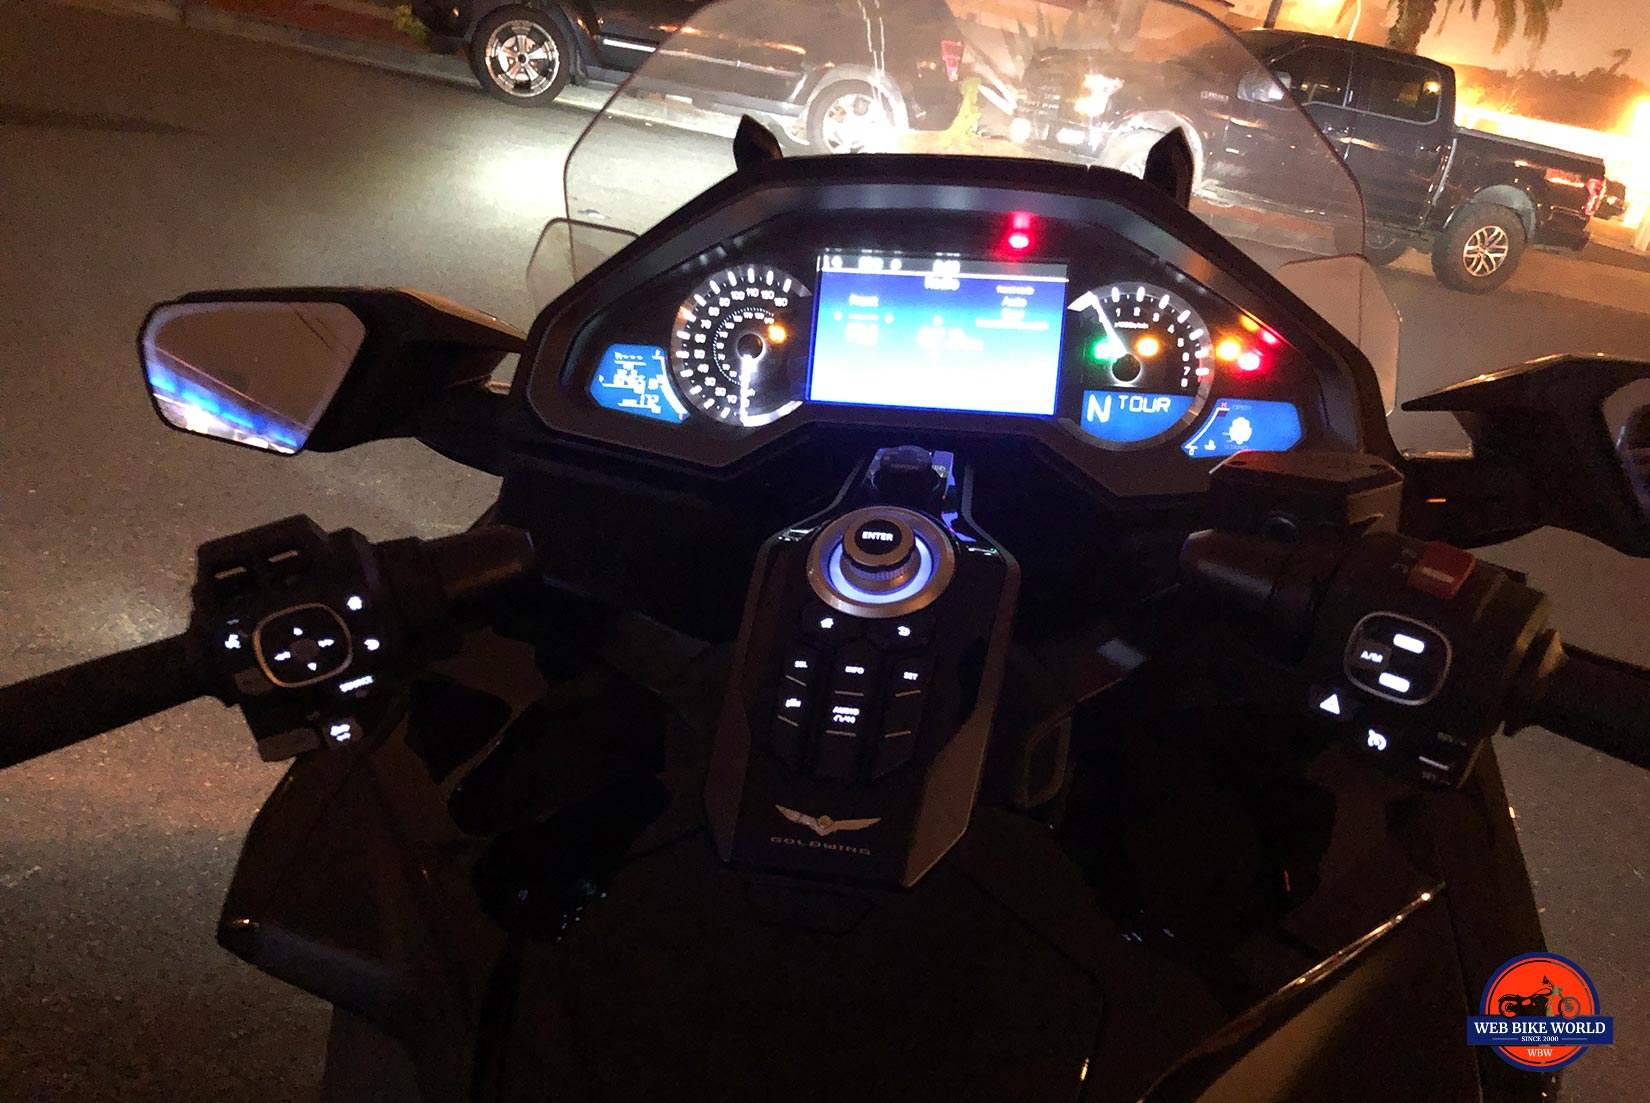 Gold Wing DCT dash and handlebars at night.